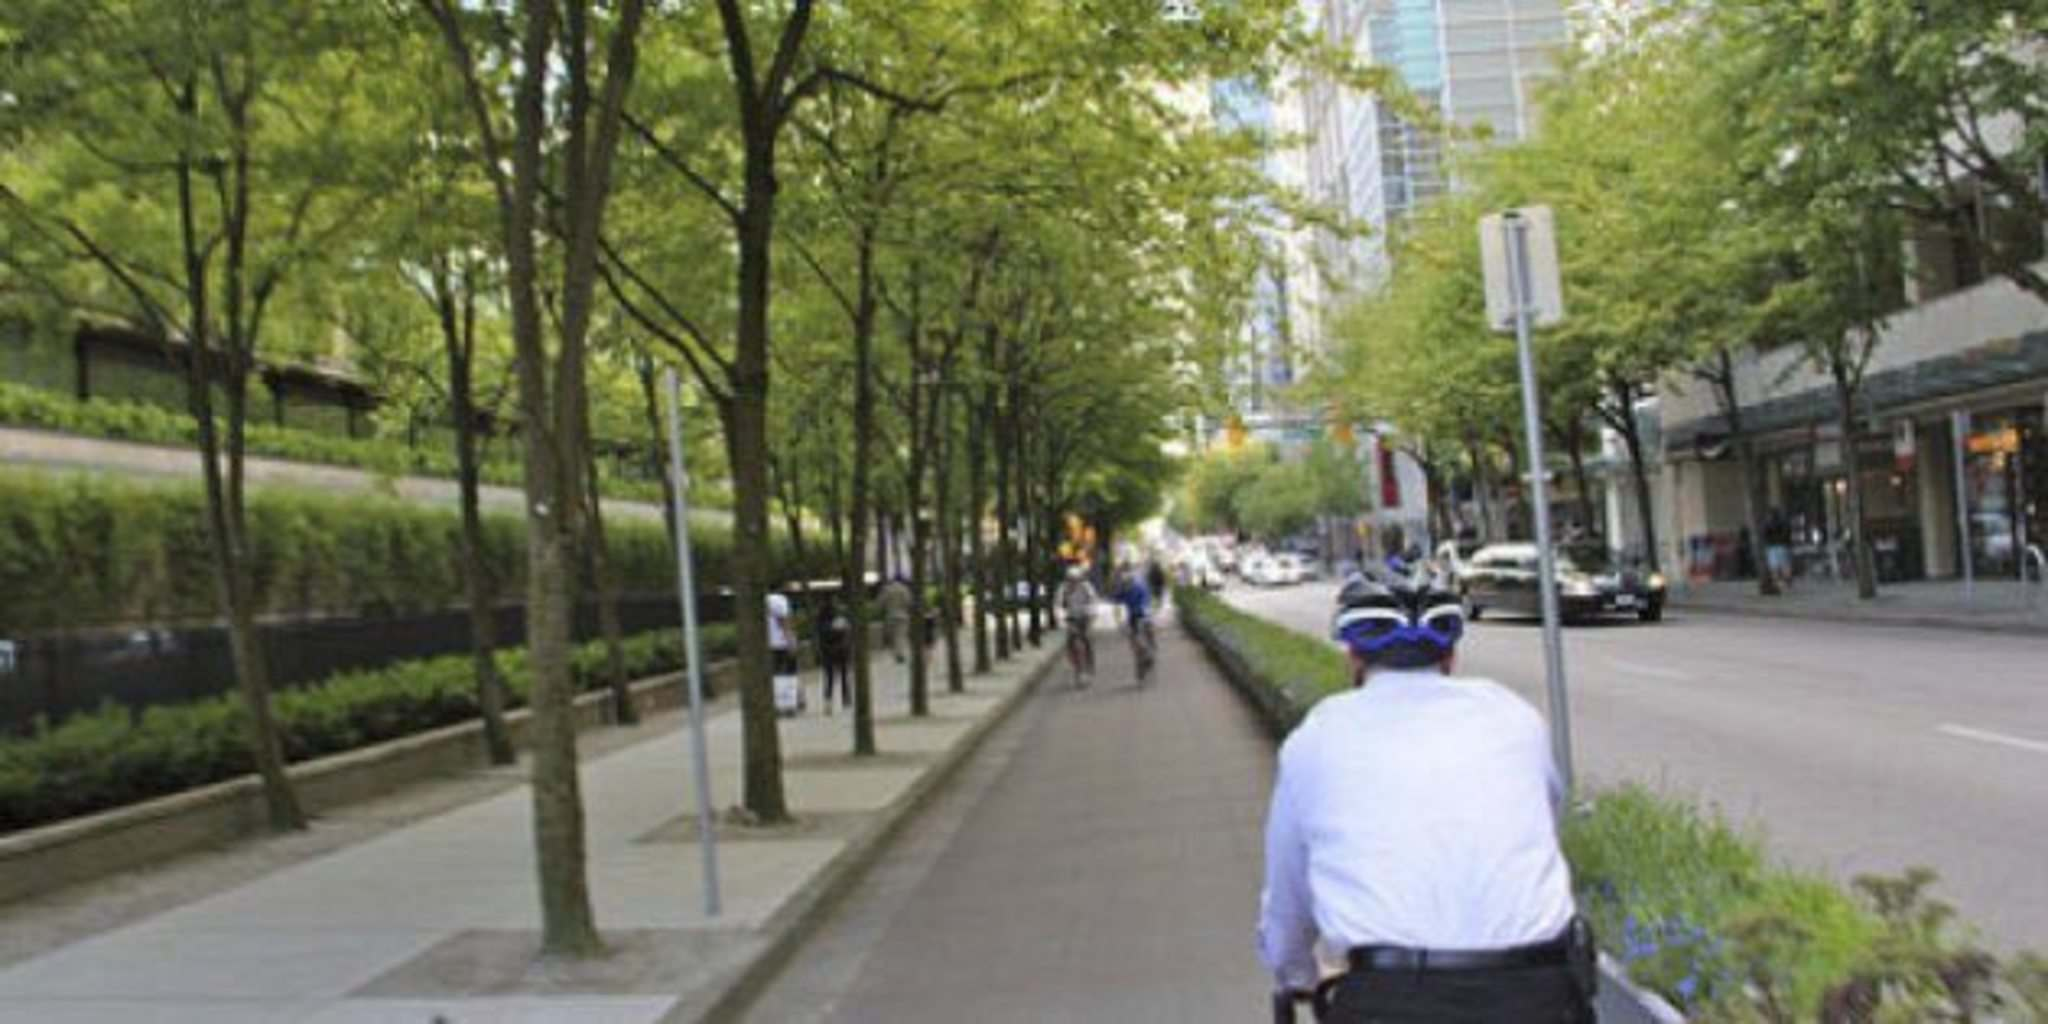 Anders Swanson/Twitter </p><p>The plastic pylons protecting Pembina Highway cyclists don't cut it, a city report admits. Cycling advocates are happy improvements are being considered and Trails Winnipeg executive director Anders Swanson suggests the next step might be flower-protected lanes like this one in Vancouver.</p>